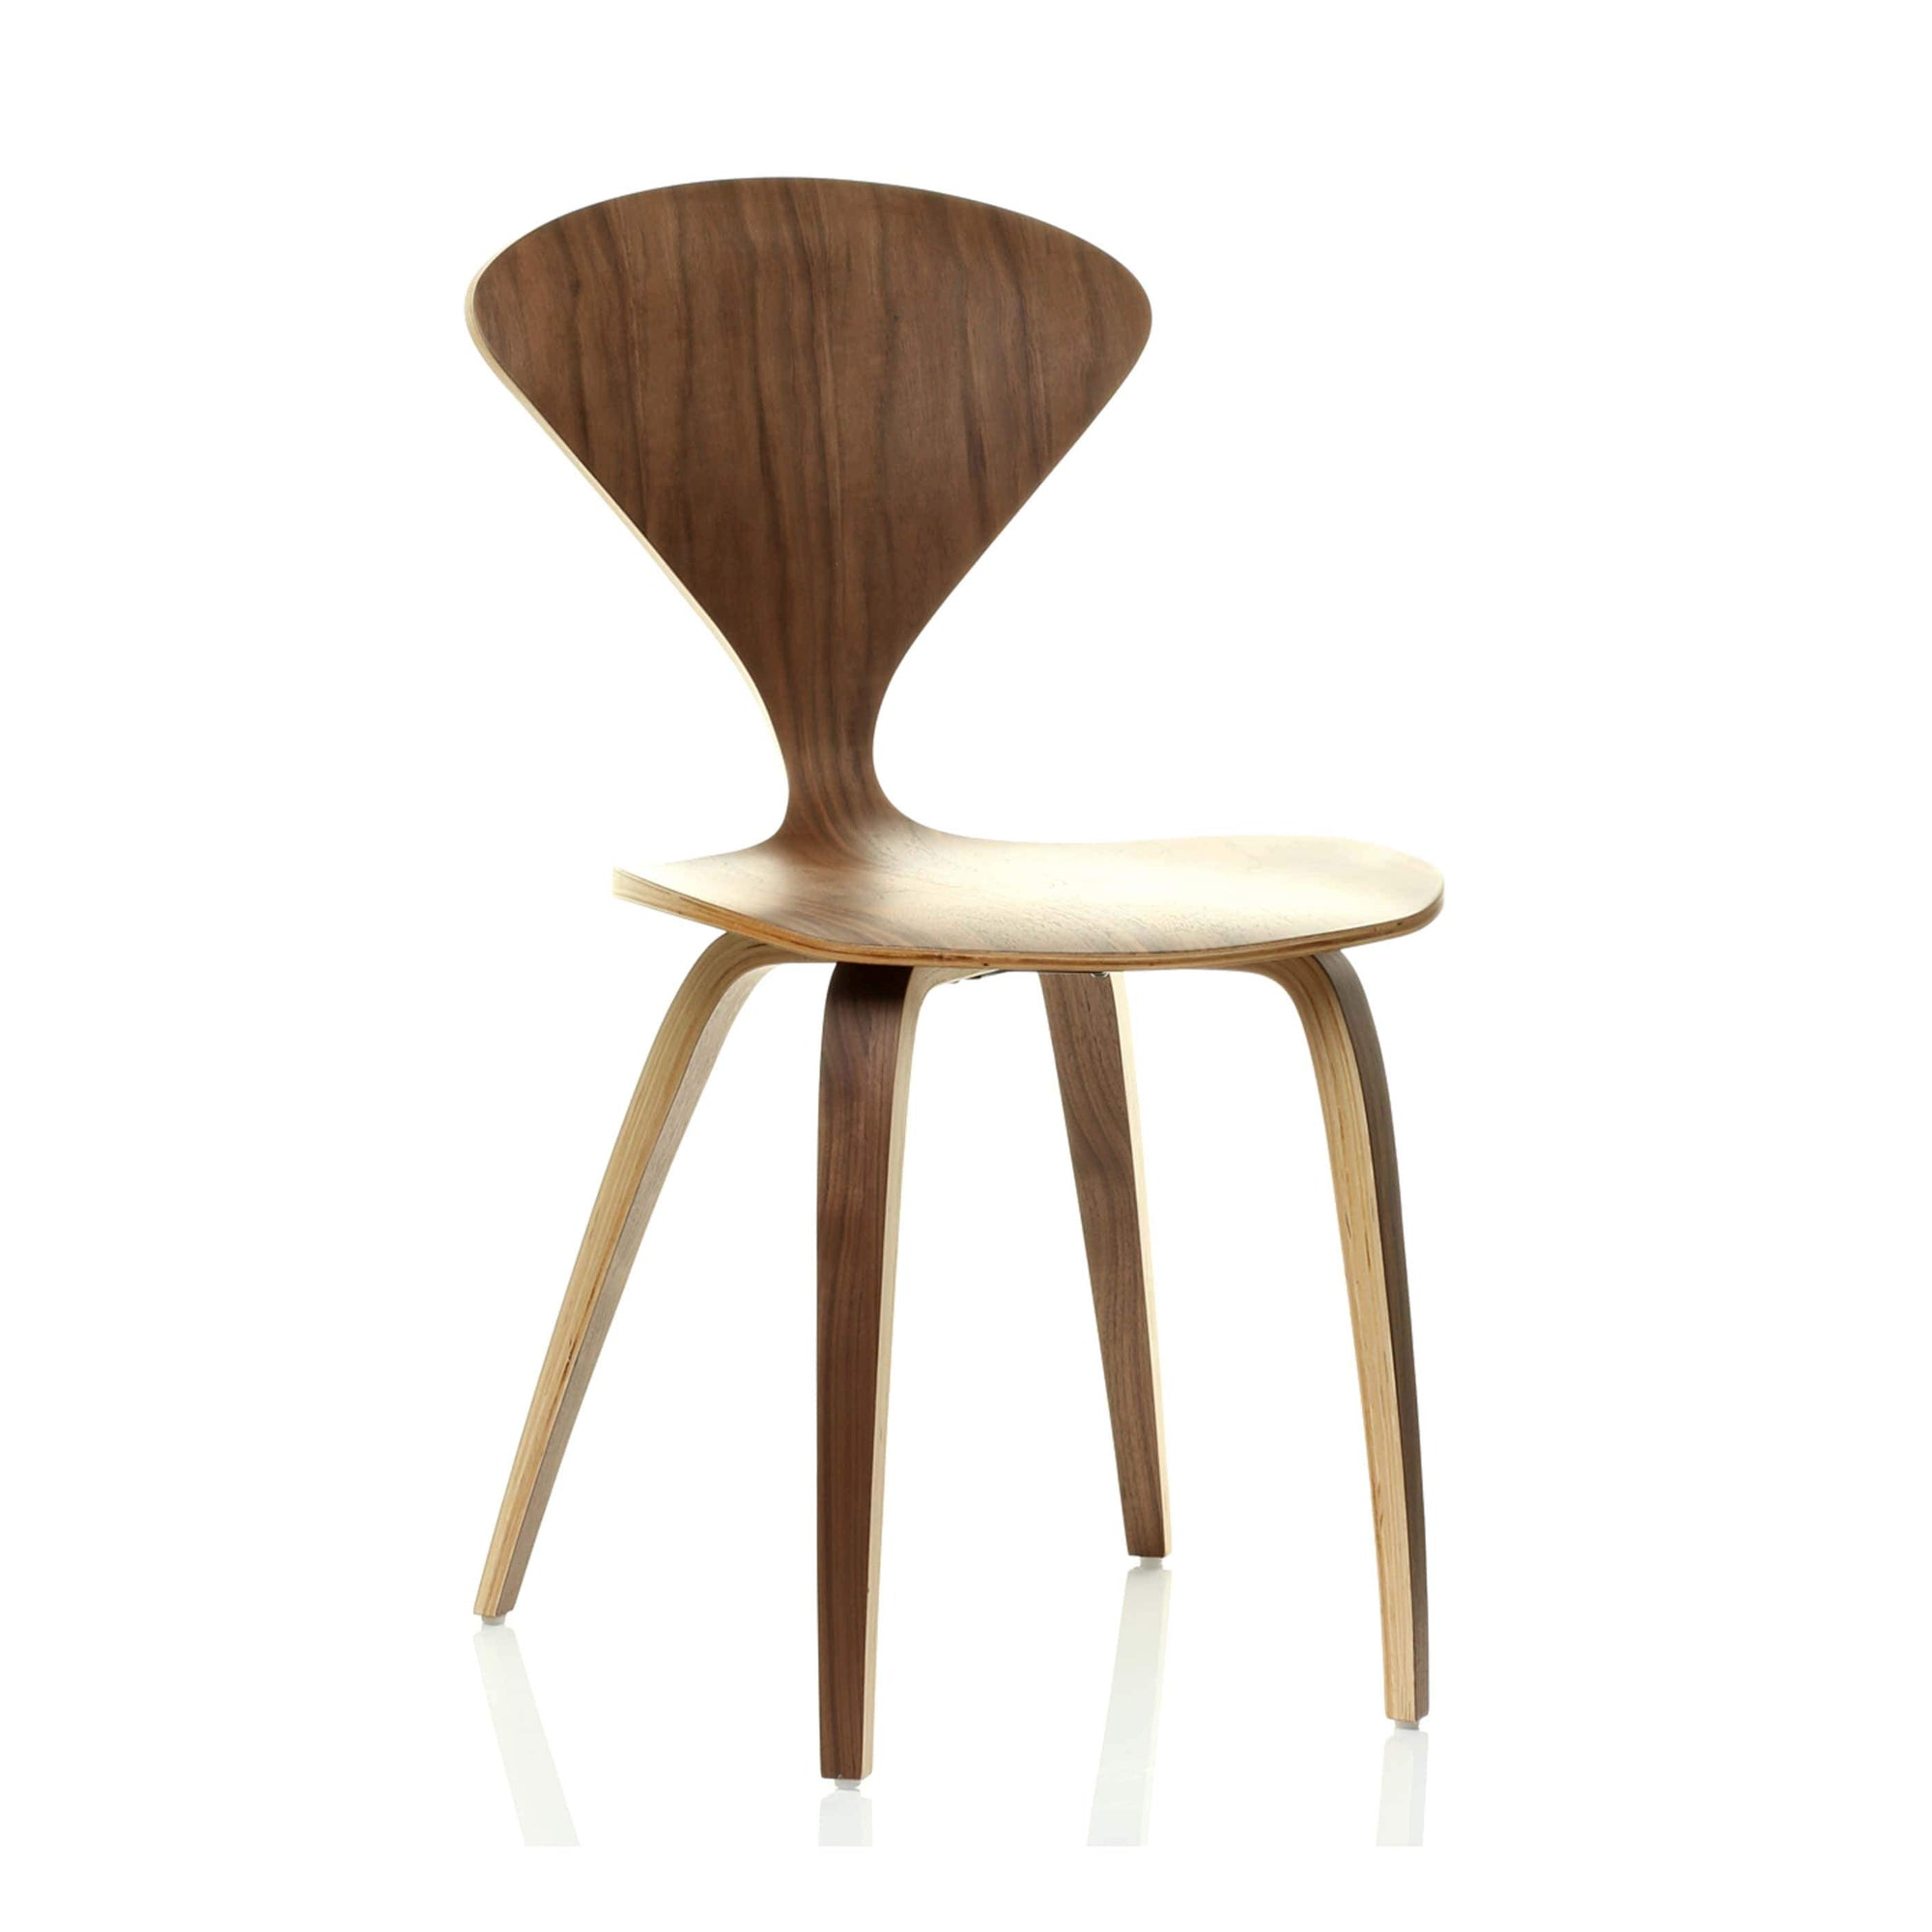 Cherner Style Chair (Walnut) - Nathan Rhodes Design